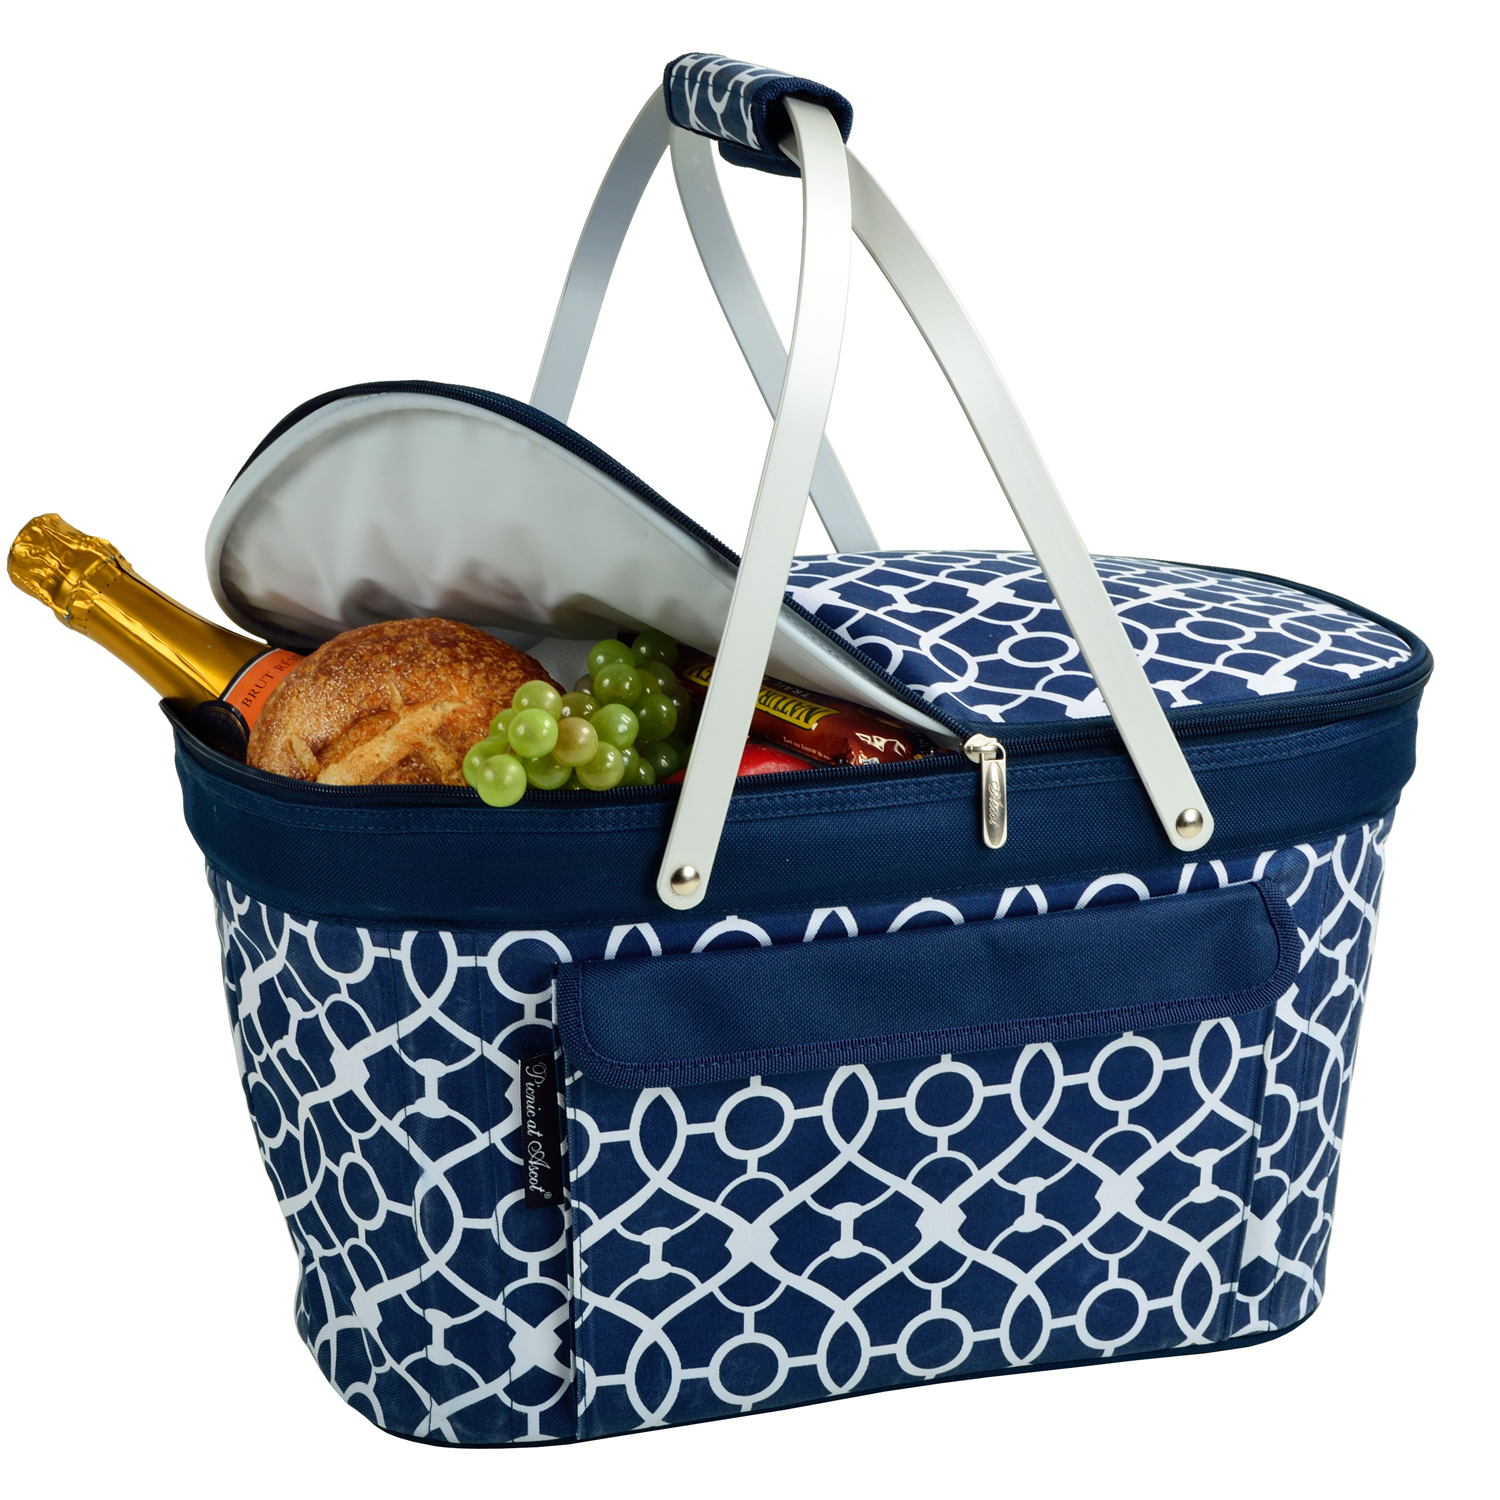 Picnic At Ascot Collapsible Insulated Picnic Basket : Picnic at ascot stylish insulated market basket